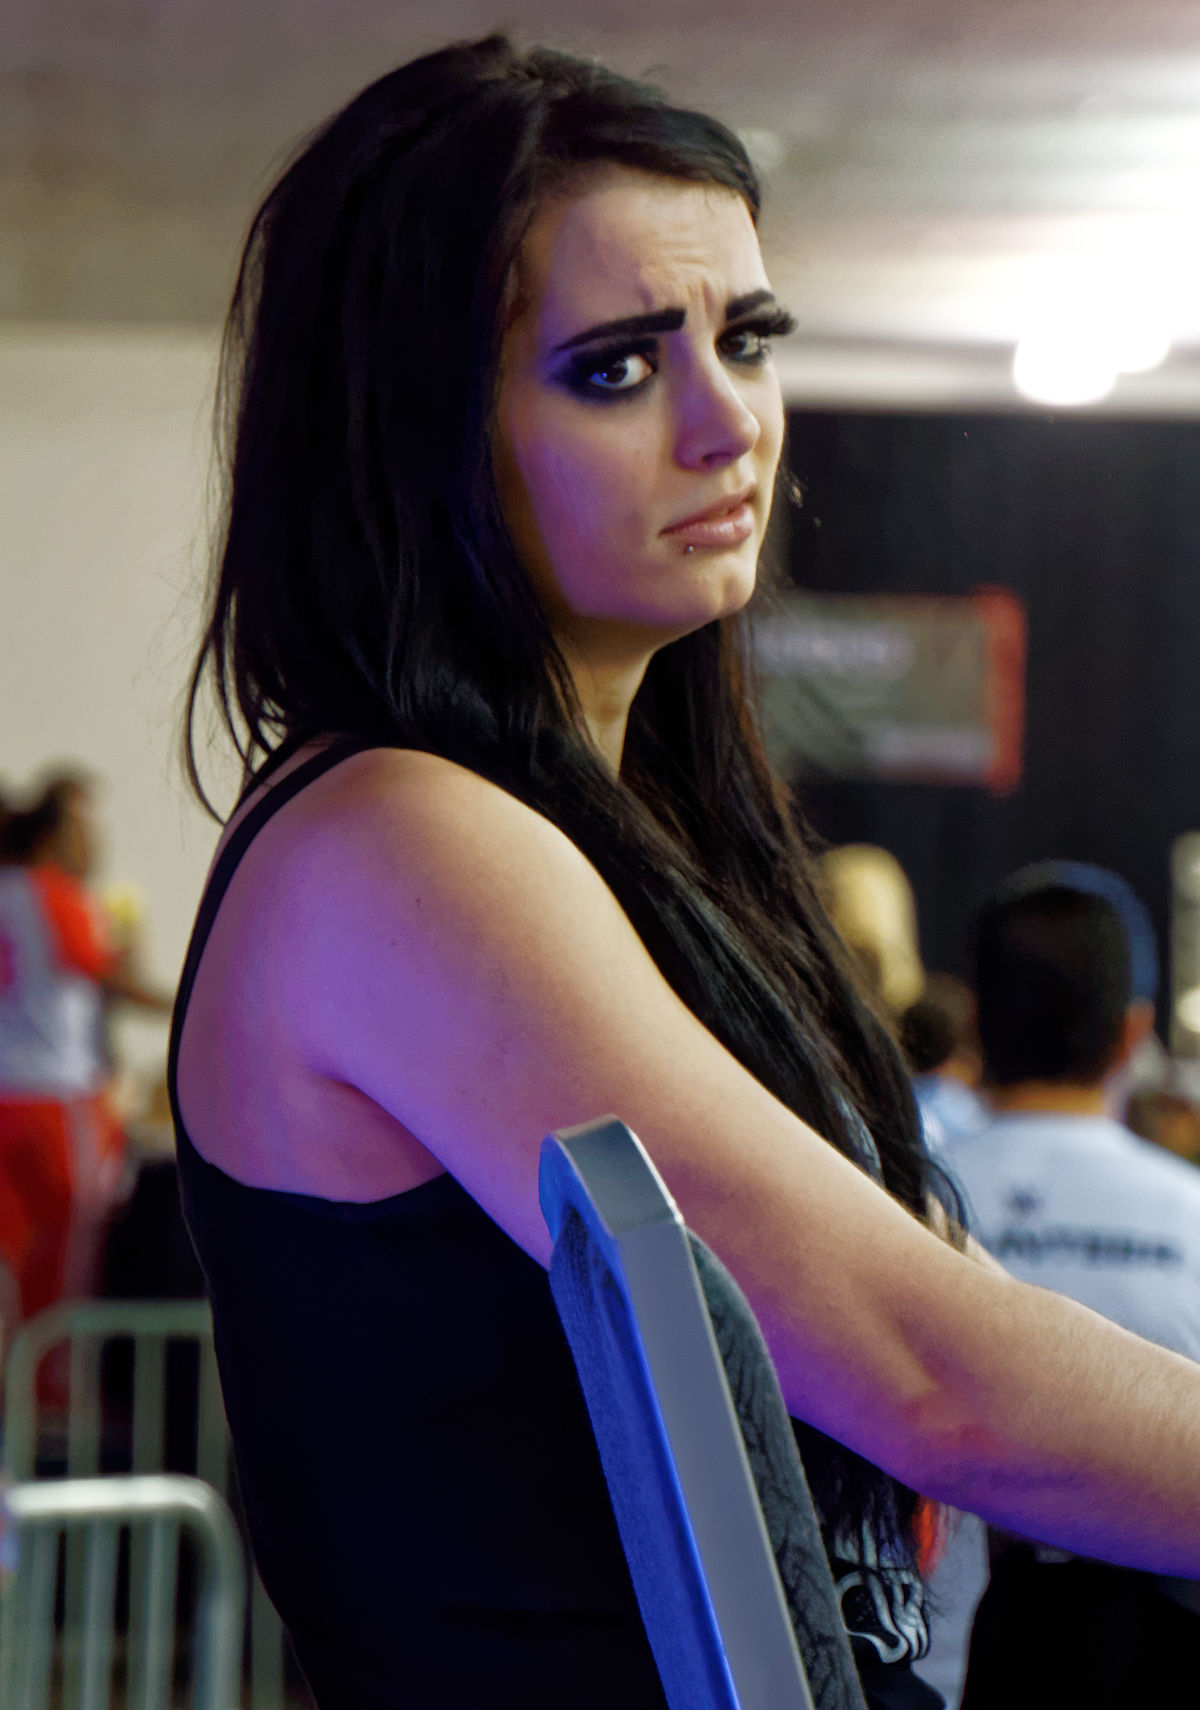 Paige (wrestler) - Simple English Wikipedia, the free encyclopedia